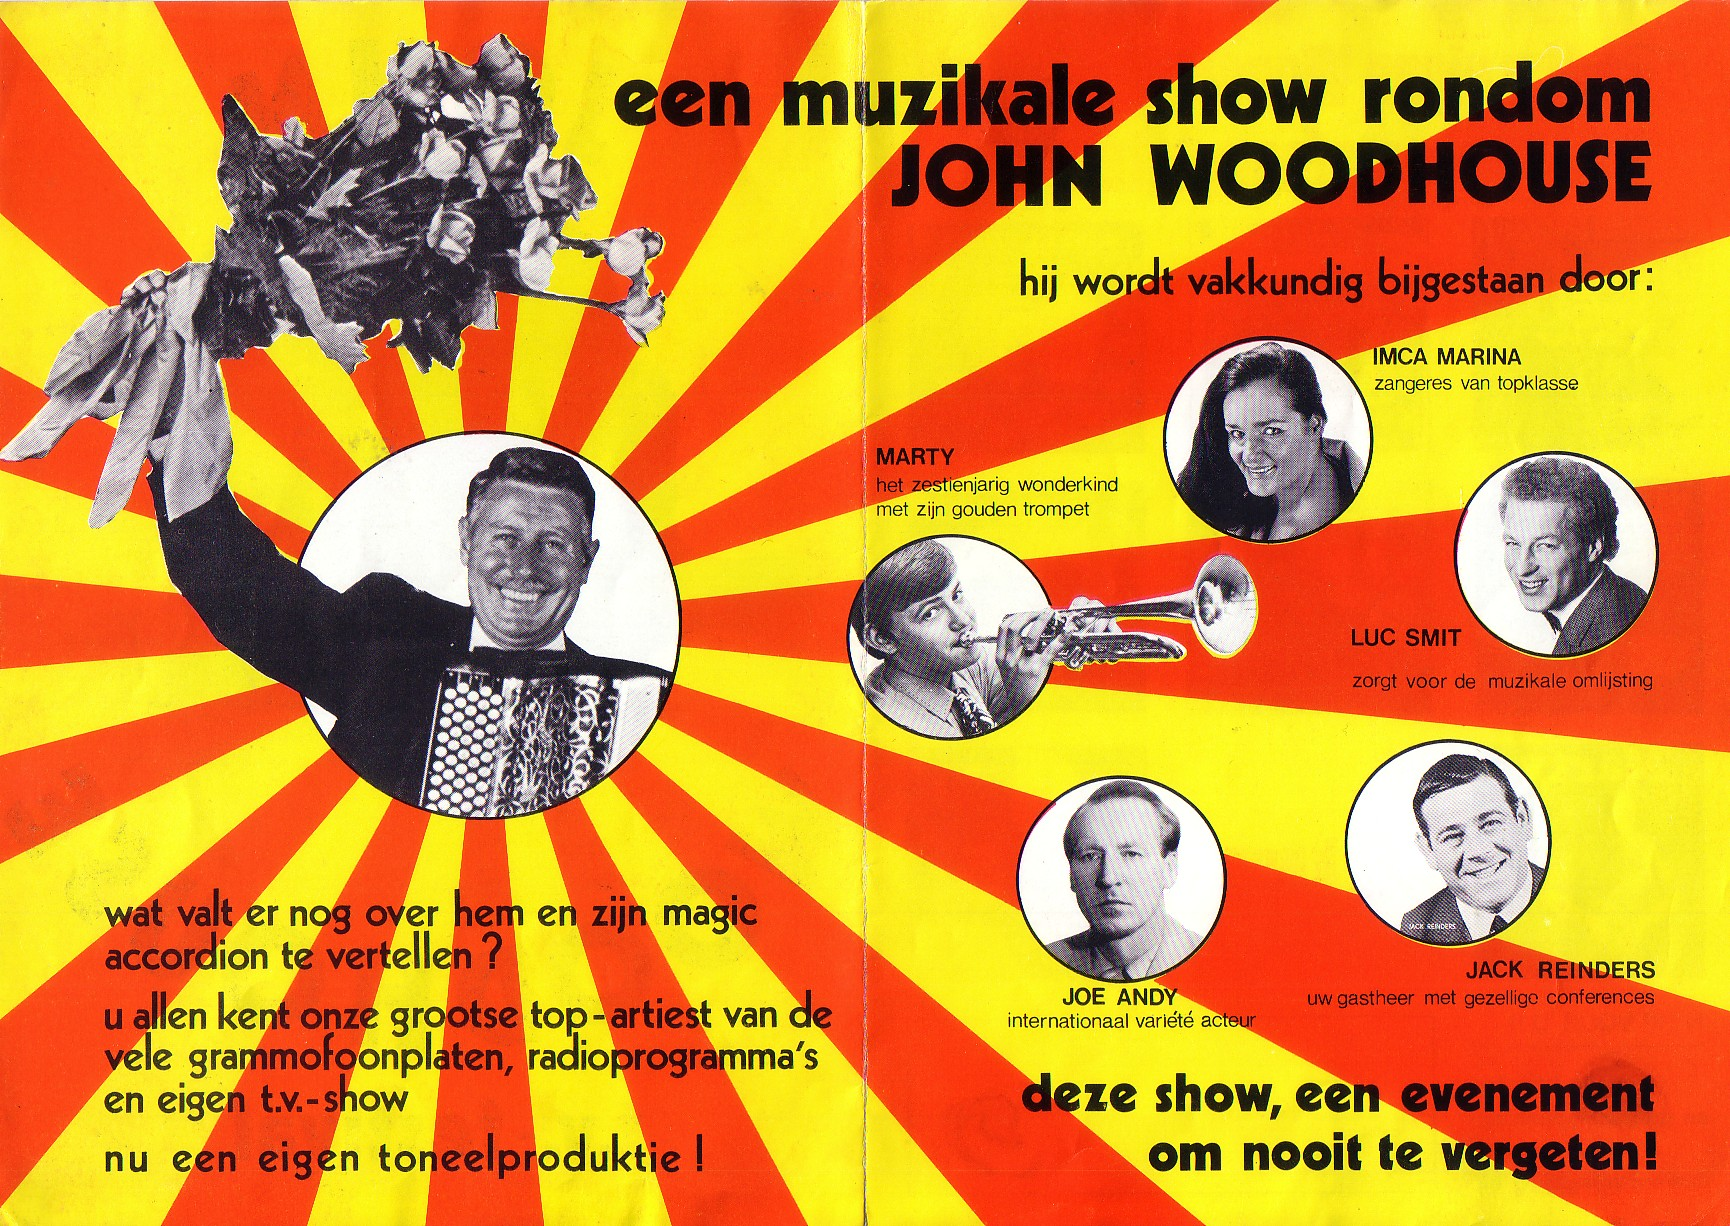 Showavond met John Woodhouse 1971